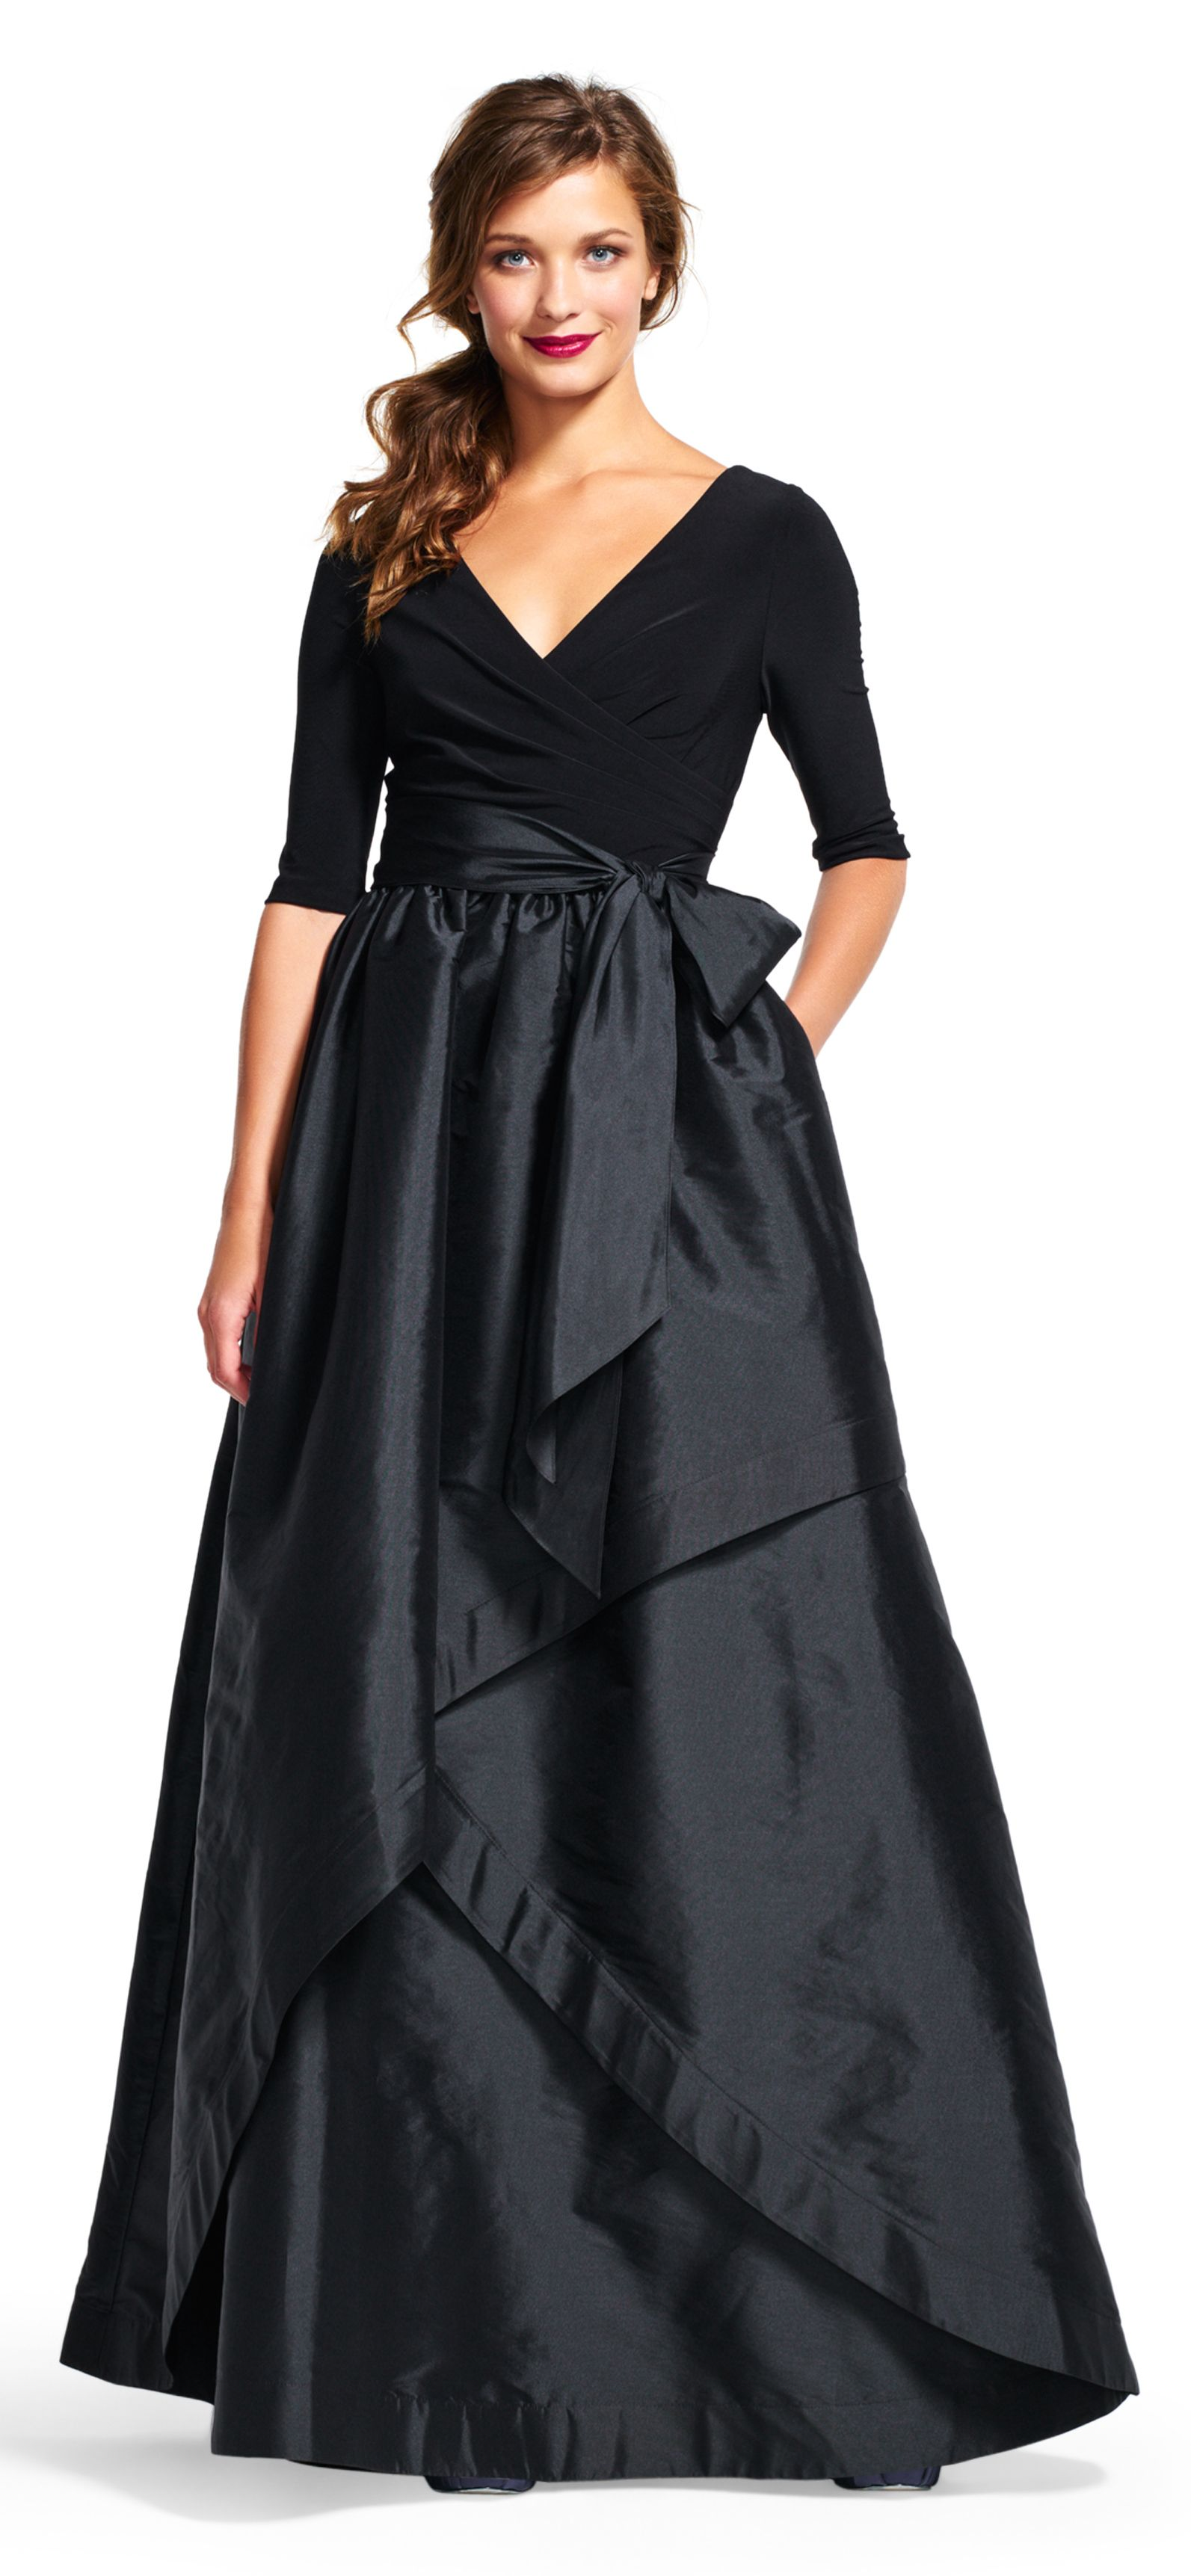 Three Quarter Sleeve Wrap Dress With Taffeta Ball Skirt Flash Vip